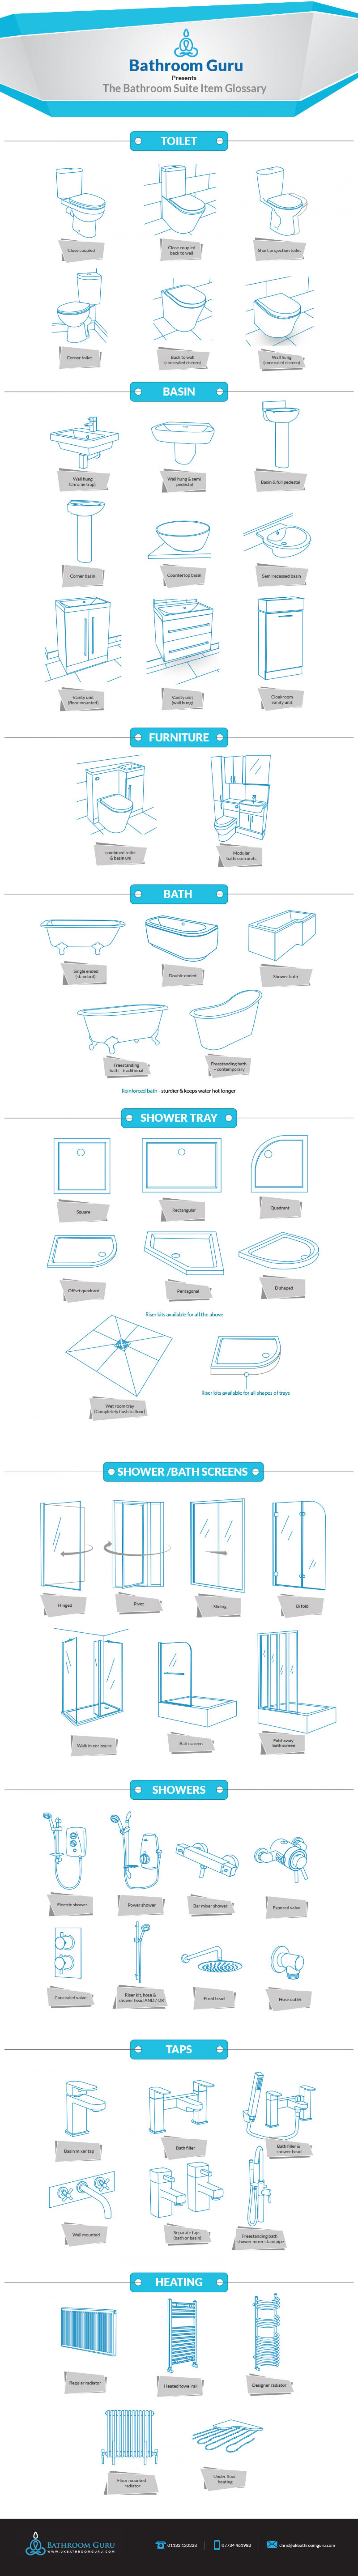 The Bathroom Suite Item Glossary  Infographic